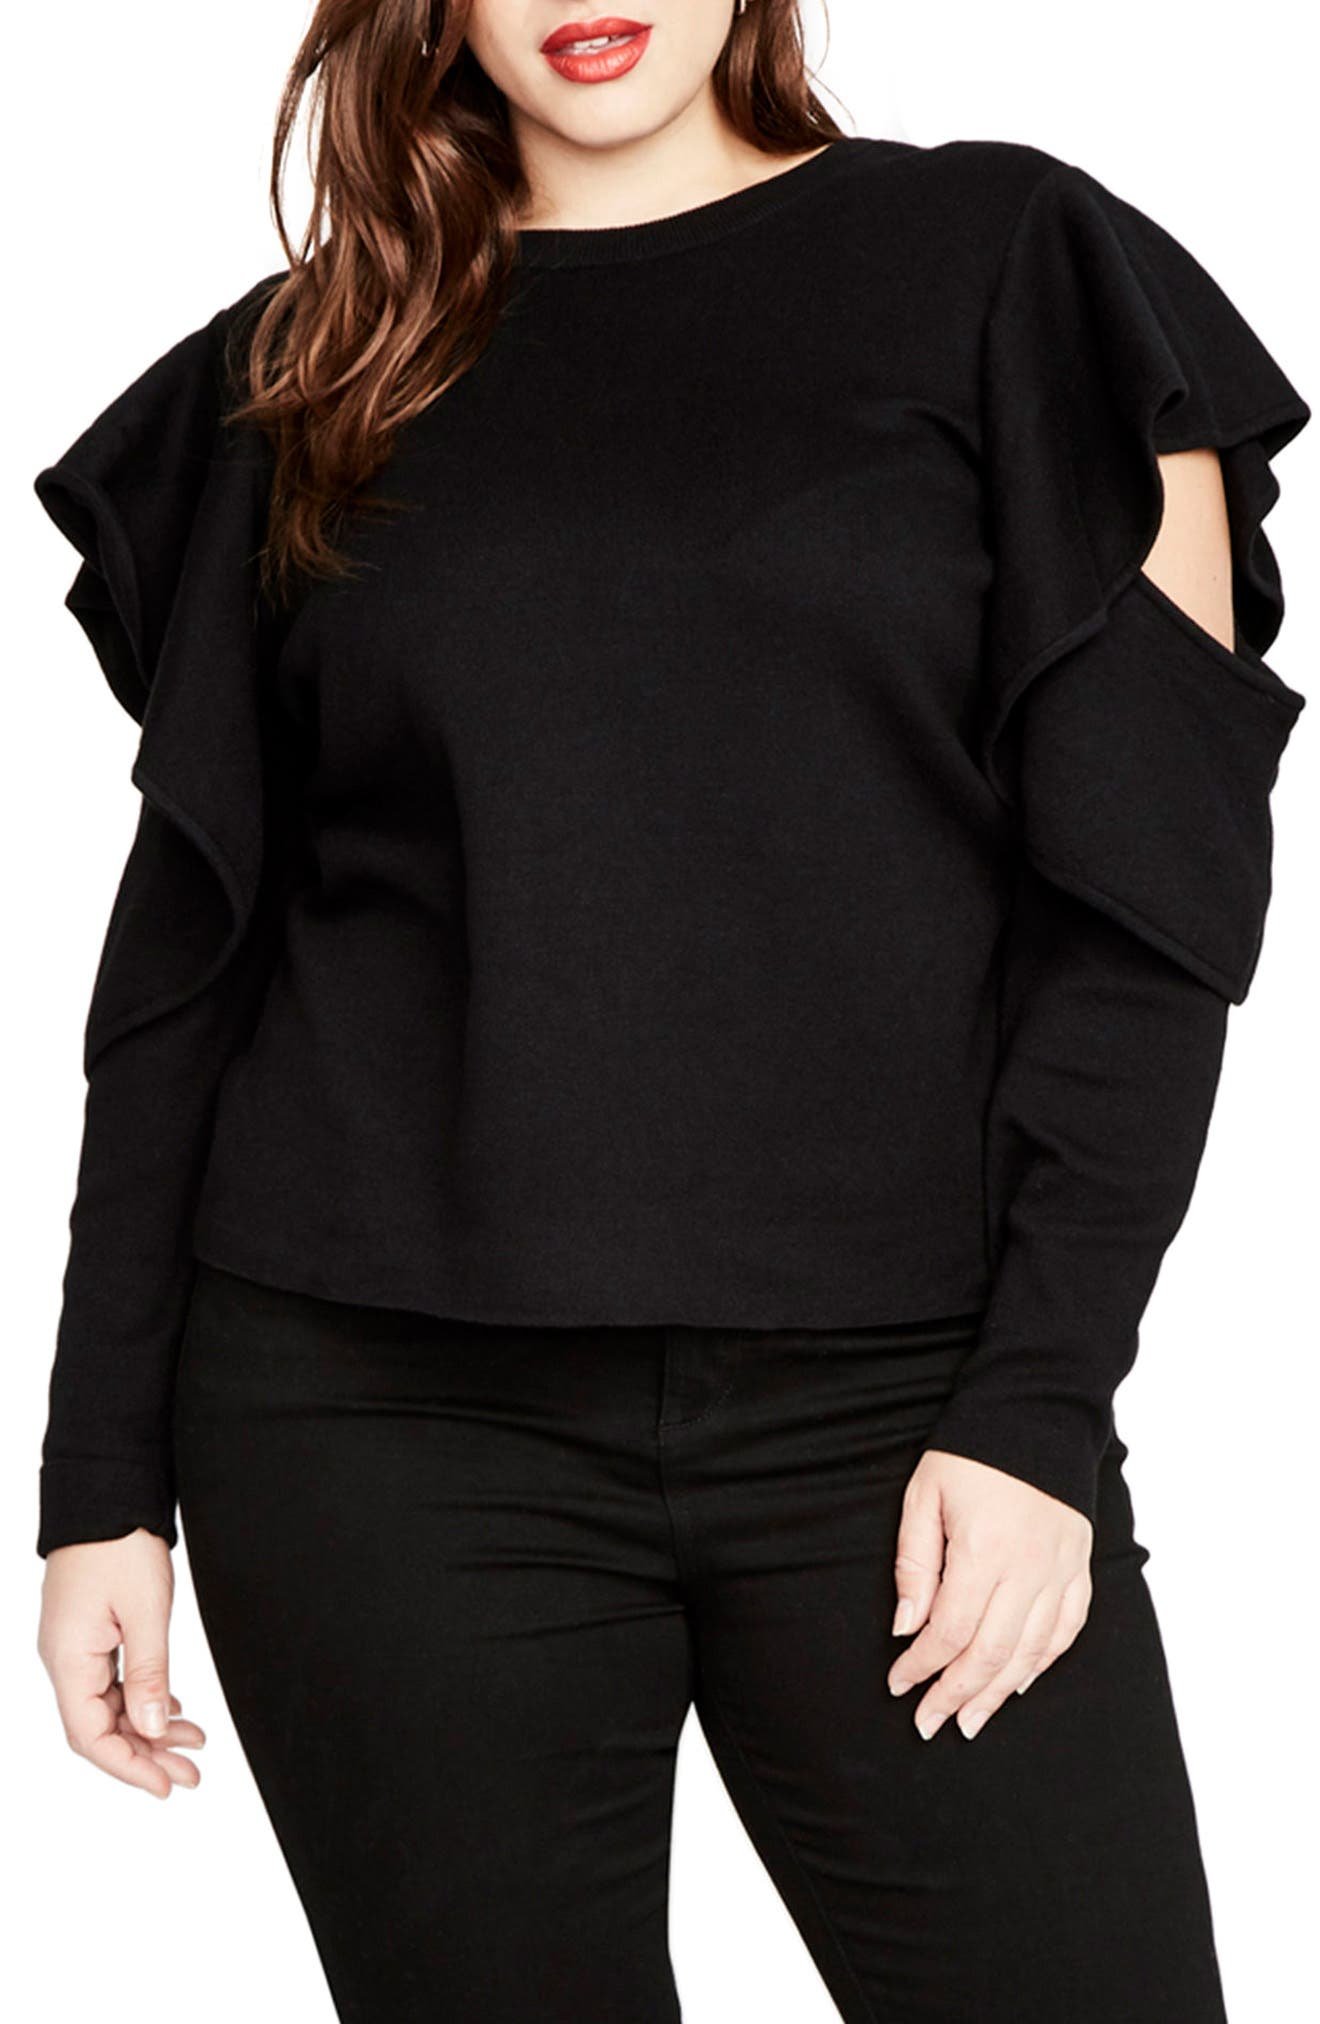 Main Image - RACHEL Rachel Roy Ruffle Sleeve Sweater (Plus Size)